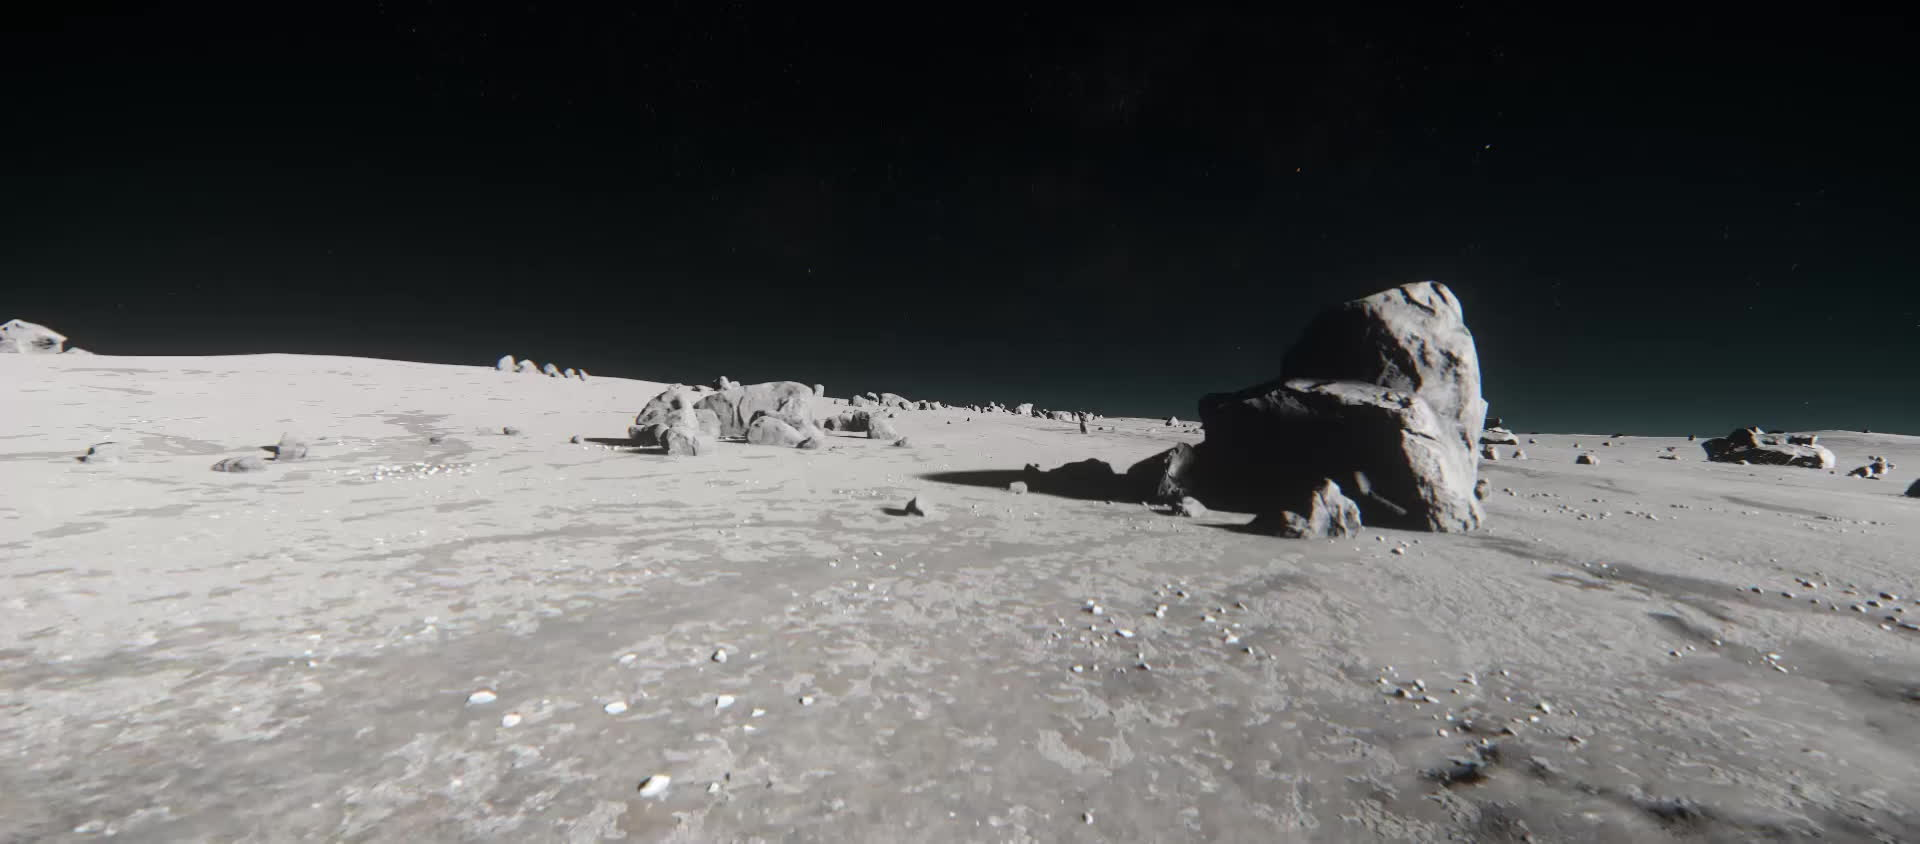 starcitizen, Star Citizen Alpha 3.0 will feature moon landings! What's the first thing you... GIFs